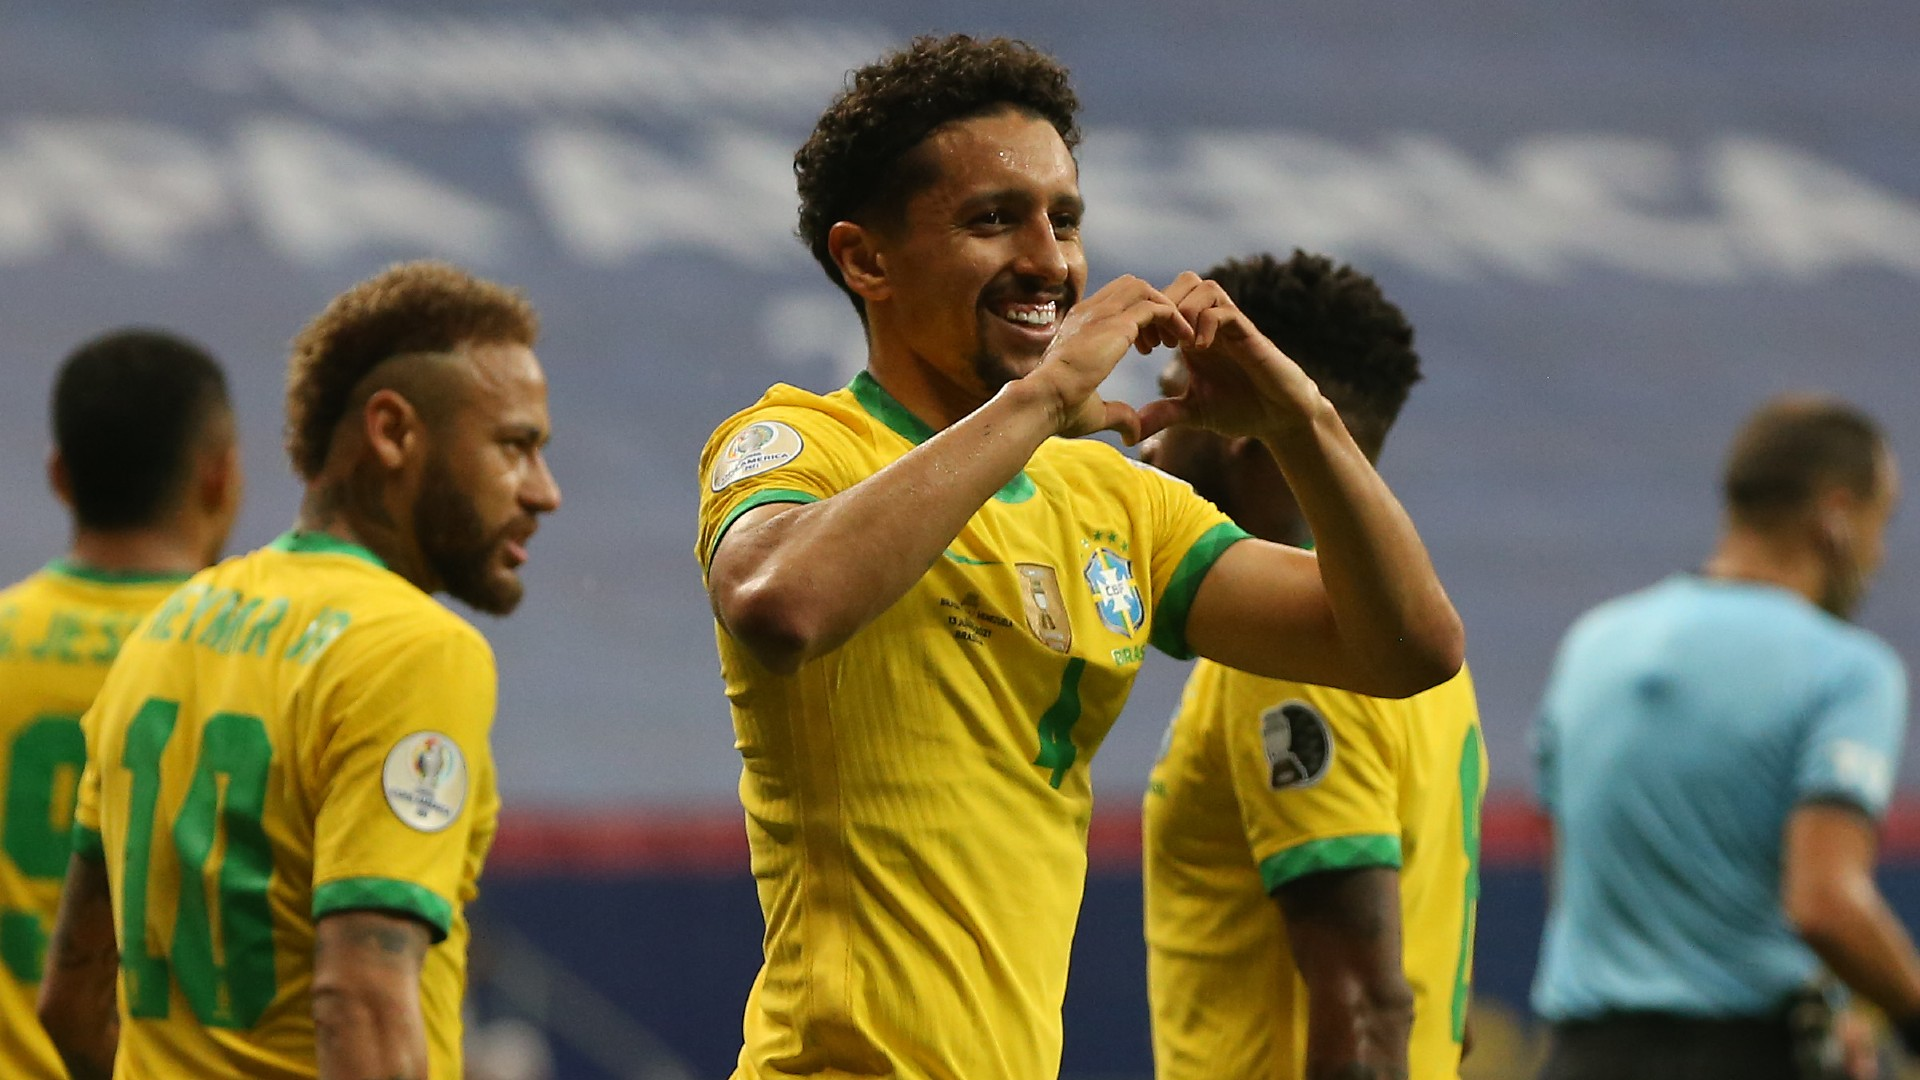 How to watch Brazil vs Ecuador in the Copa America 2021 from India?